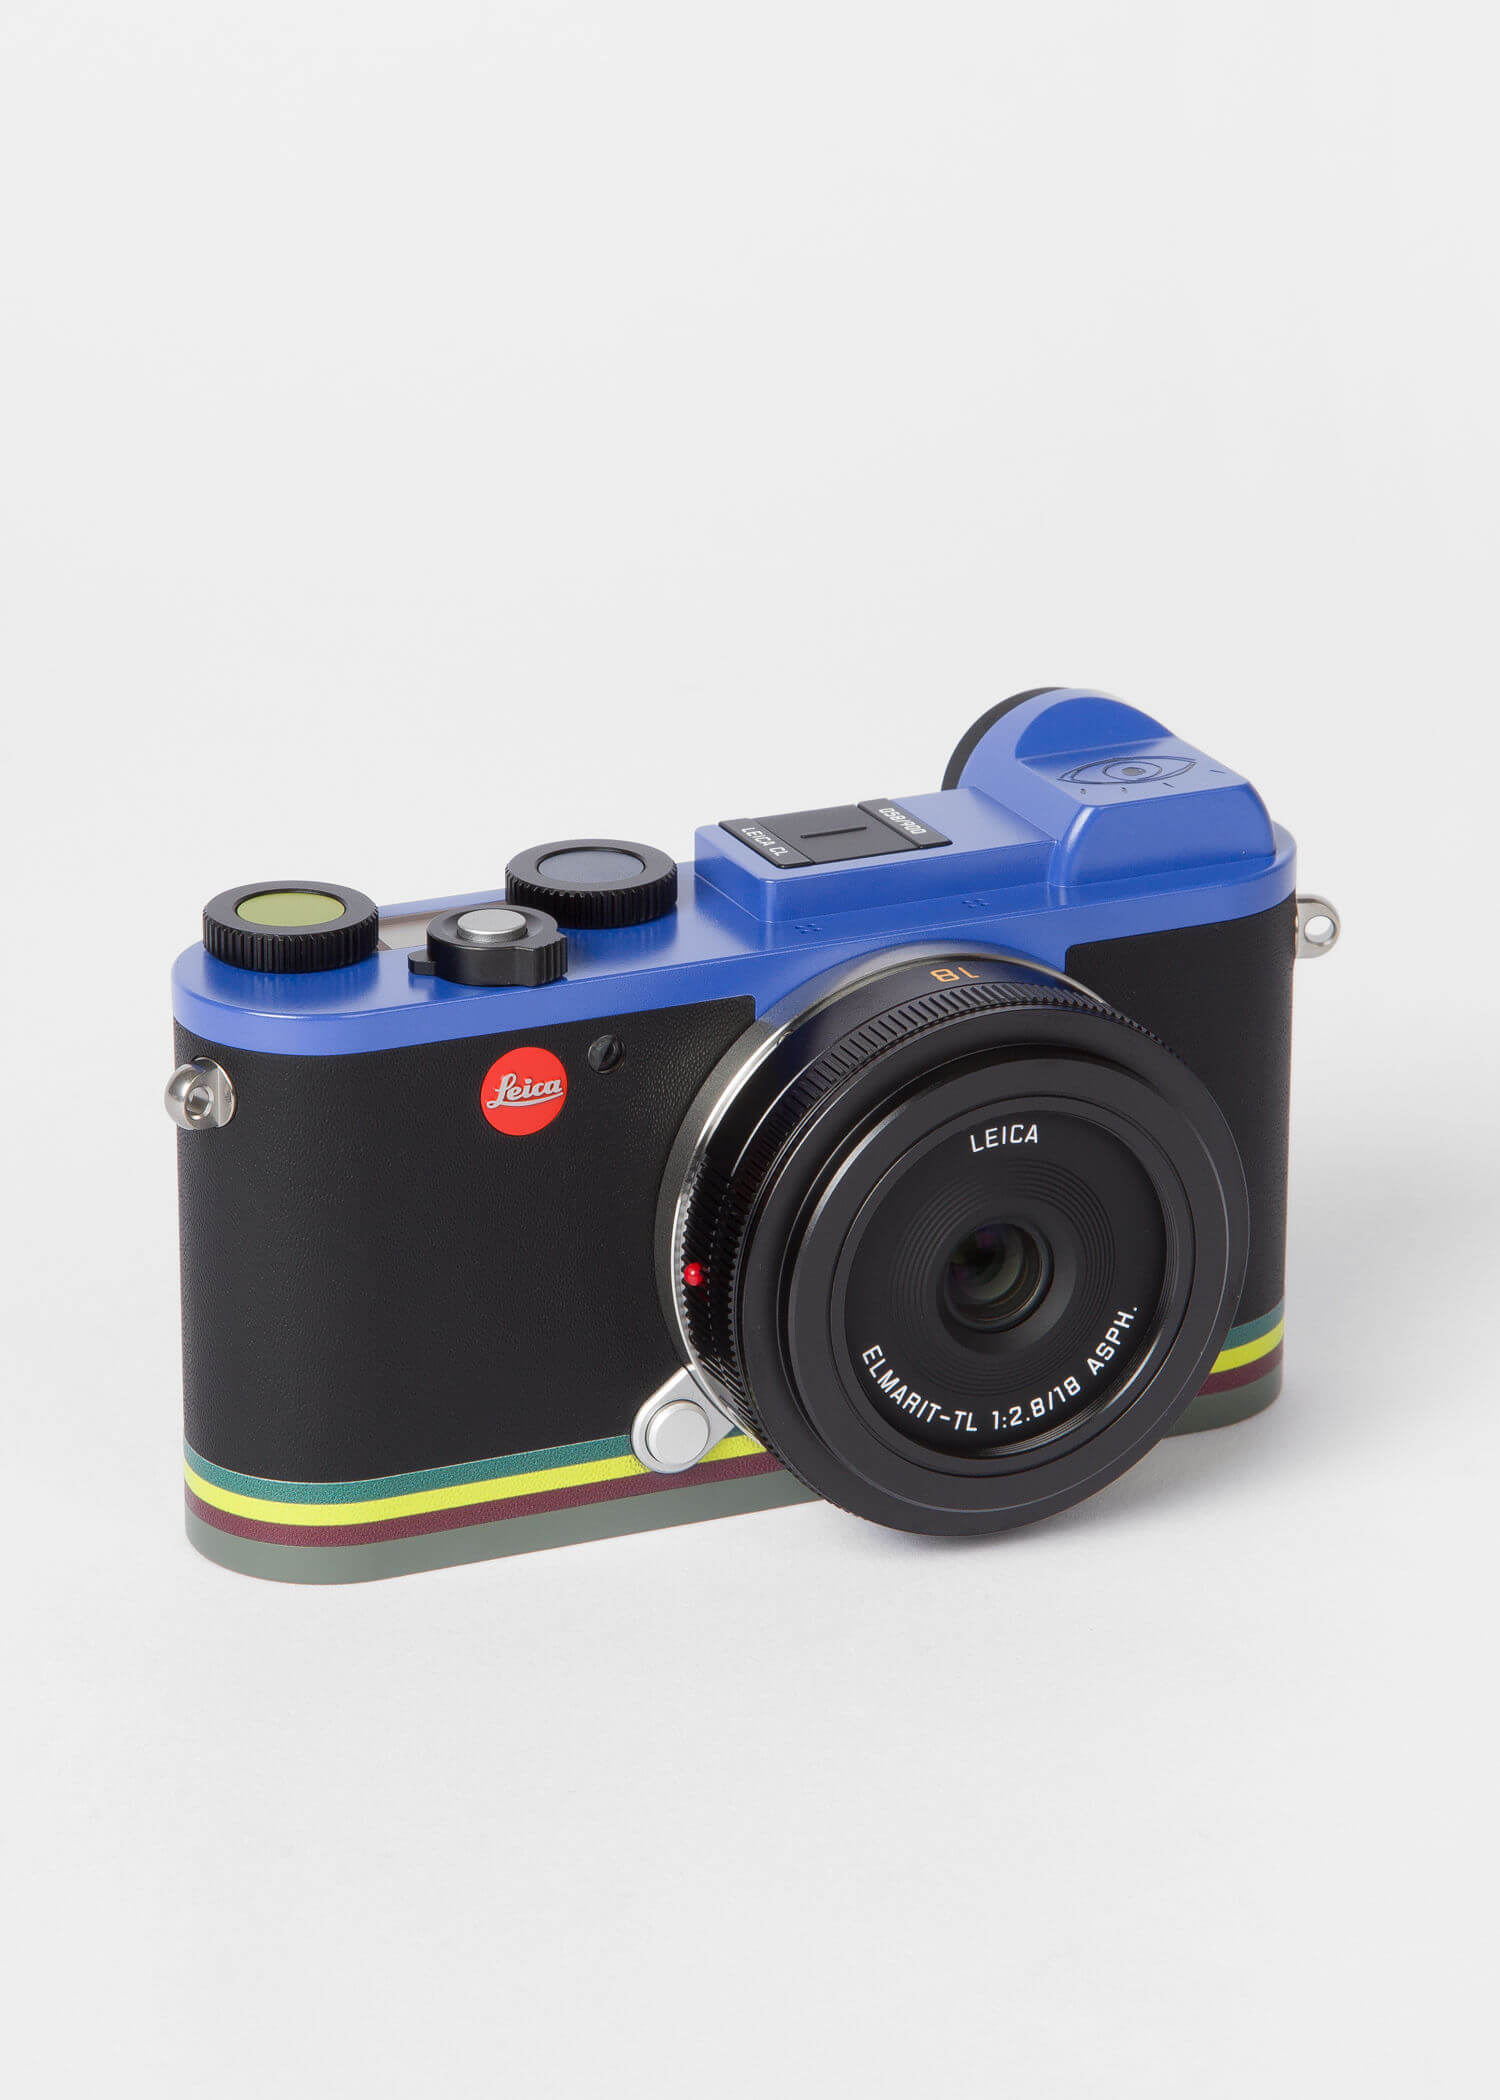 Leica CL Edition Paul Smith Mirrorless Digital Camera with 18mm Lens 3